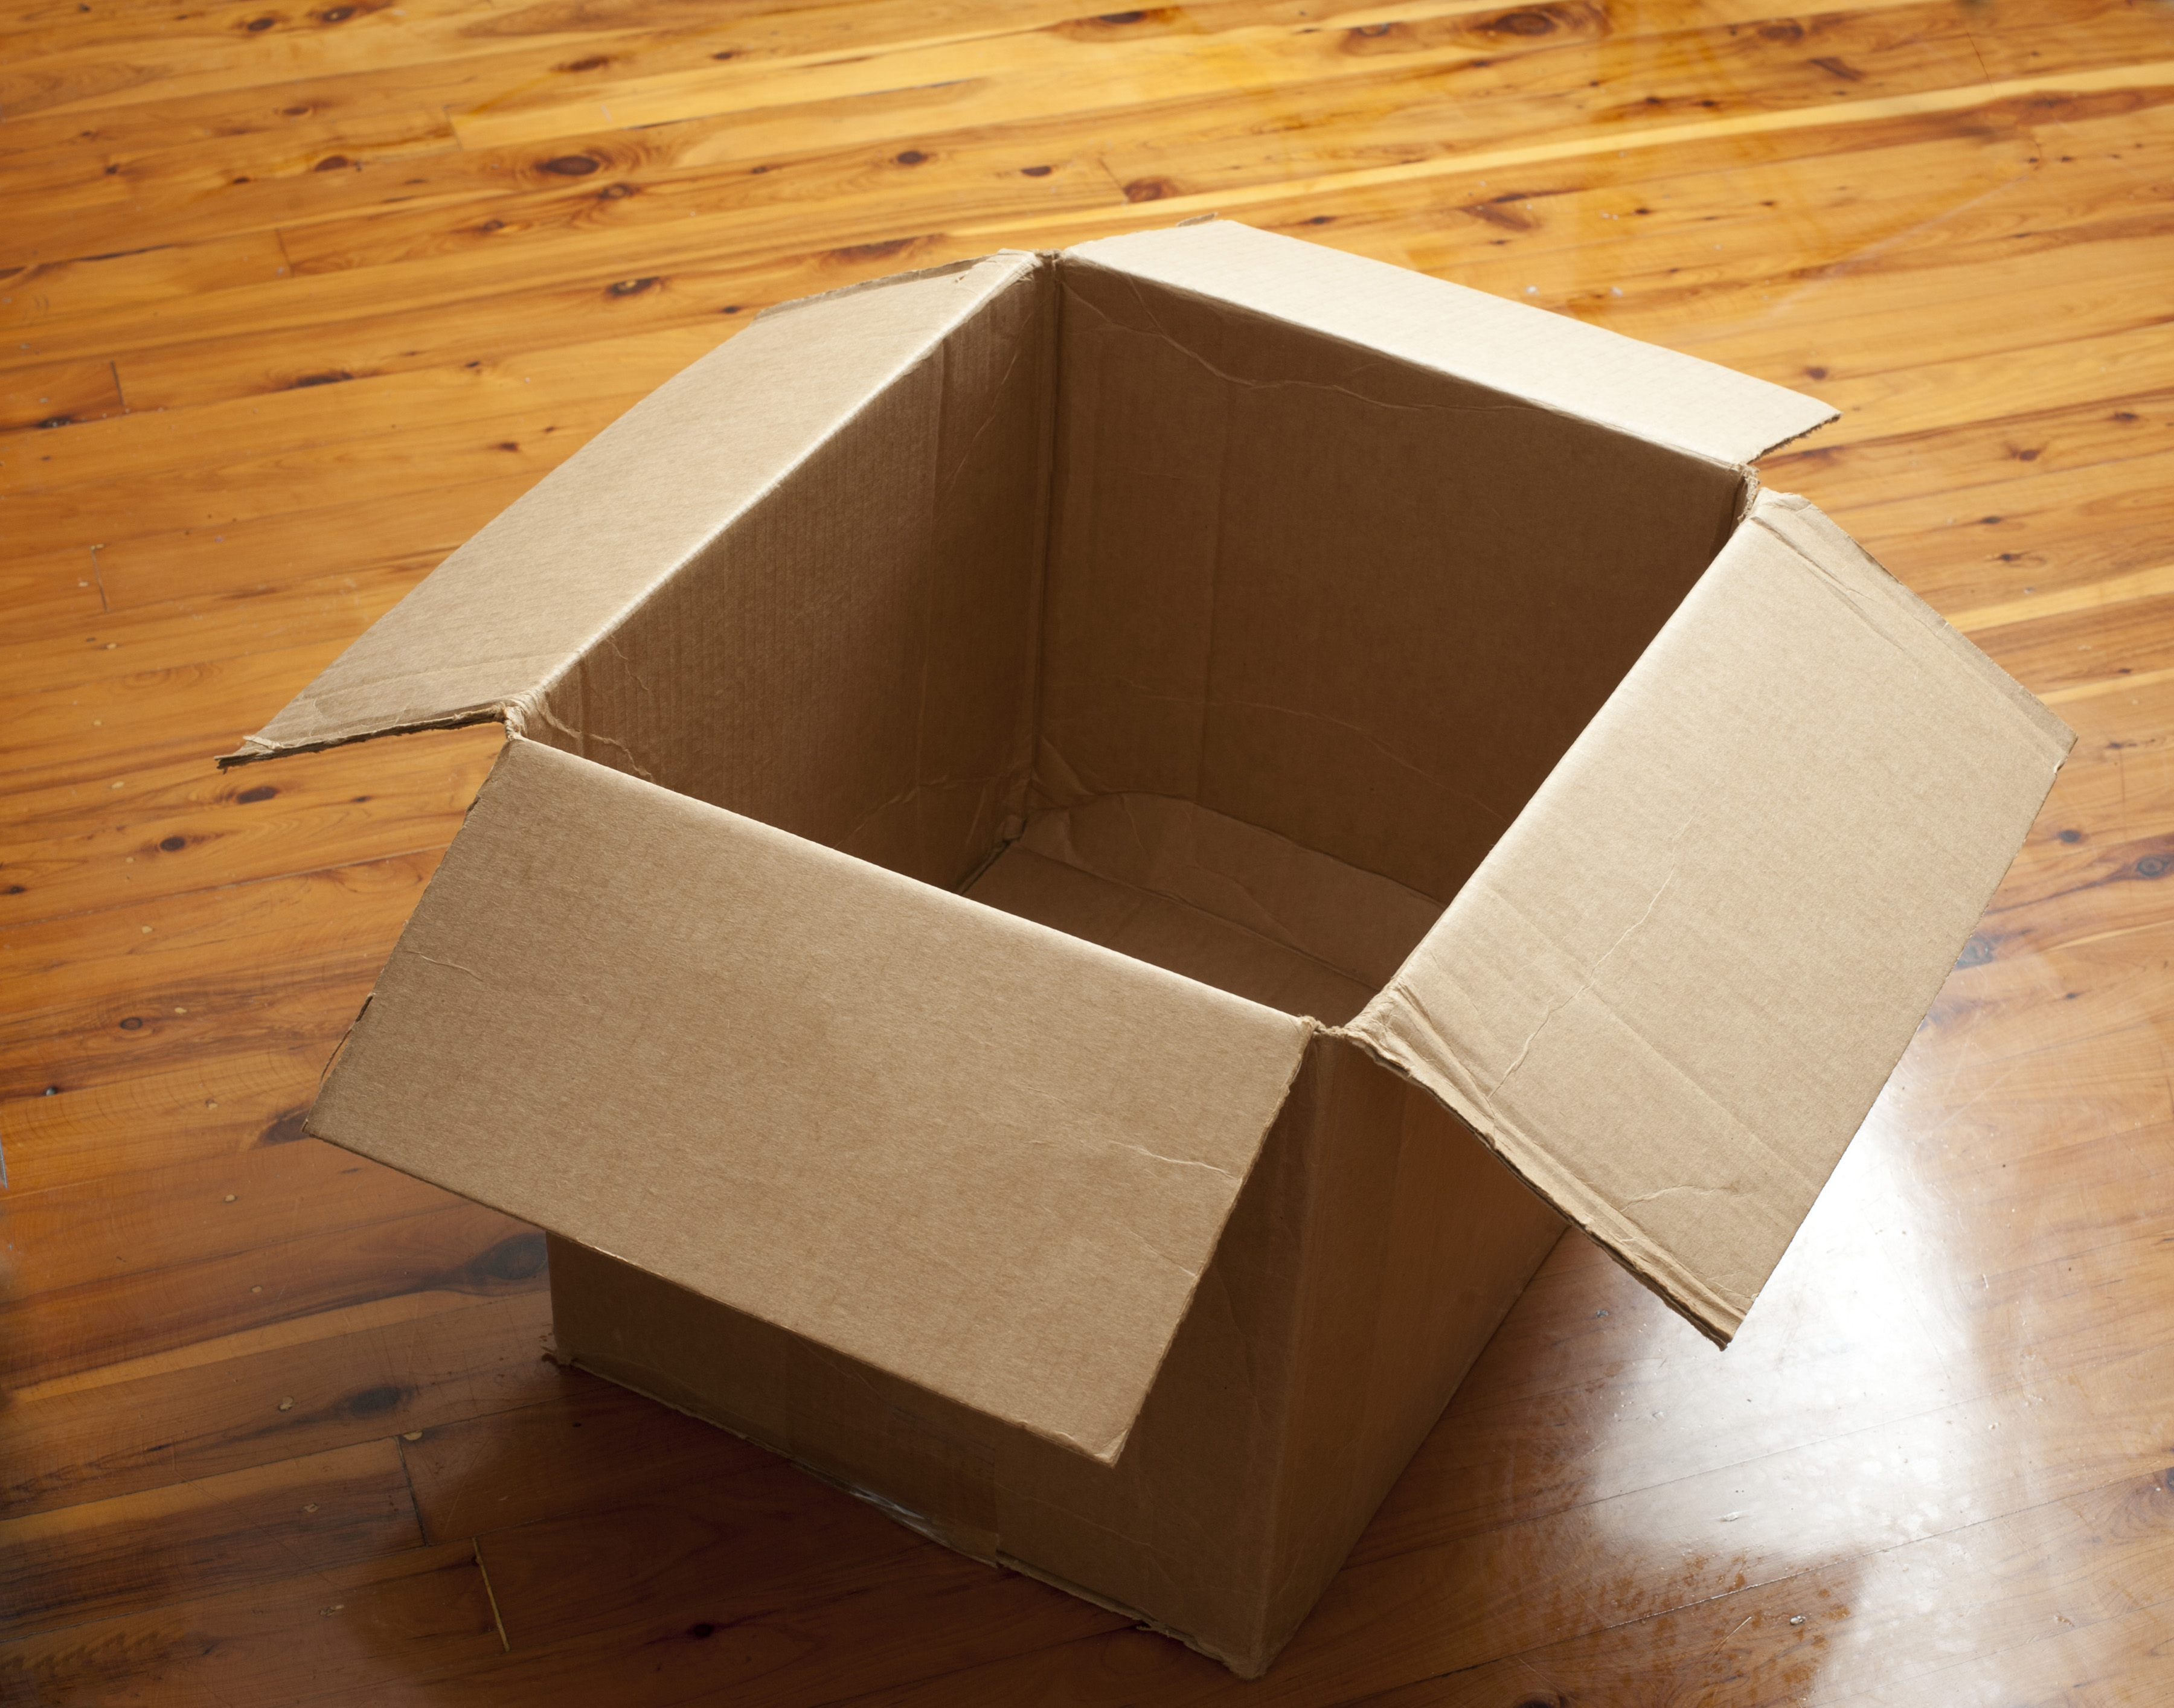 File Cardboard Boxes and their History jpg   Wikimedia Commons File Cardboard Boxes and their History jpg